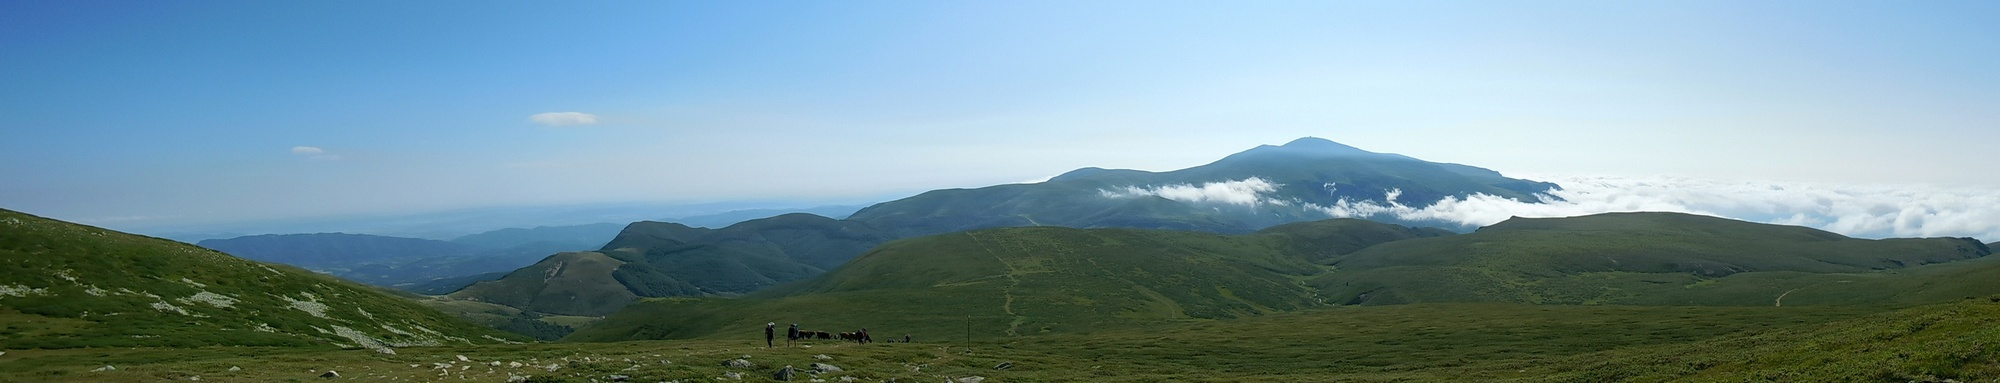 On the Footsteps of Vassil Levski, Hike in the Mountains, Bulgaria, Mesmerising Panorama on the Way to Botev